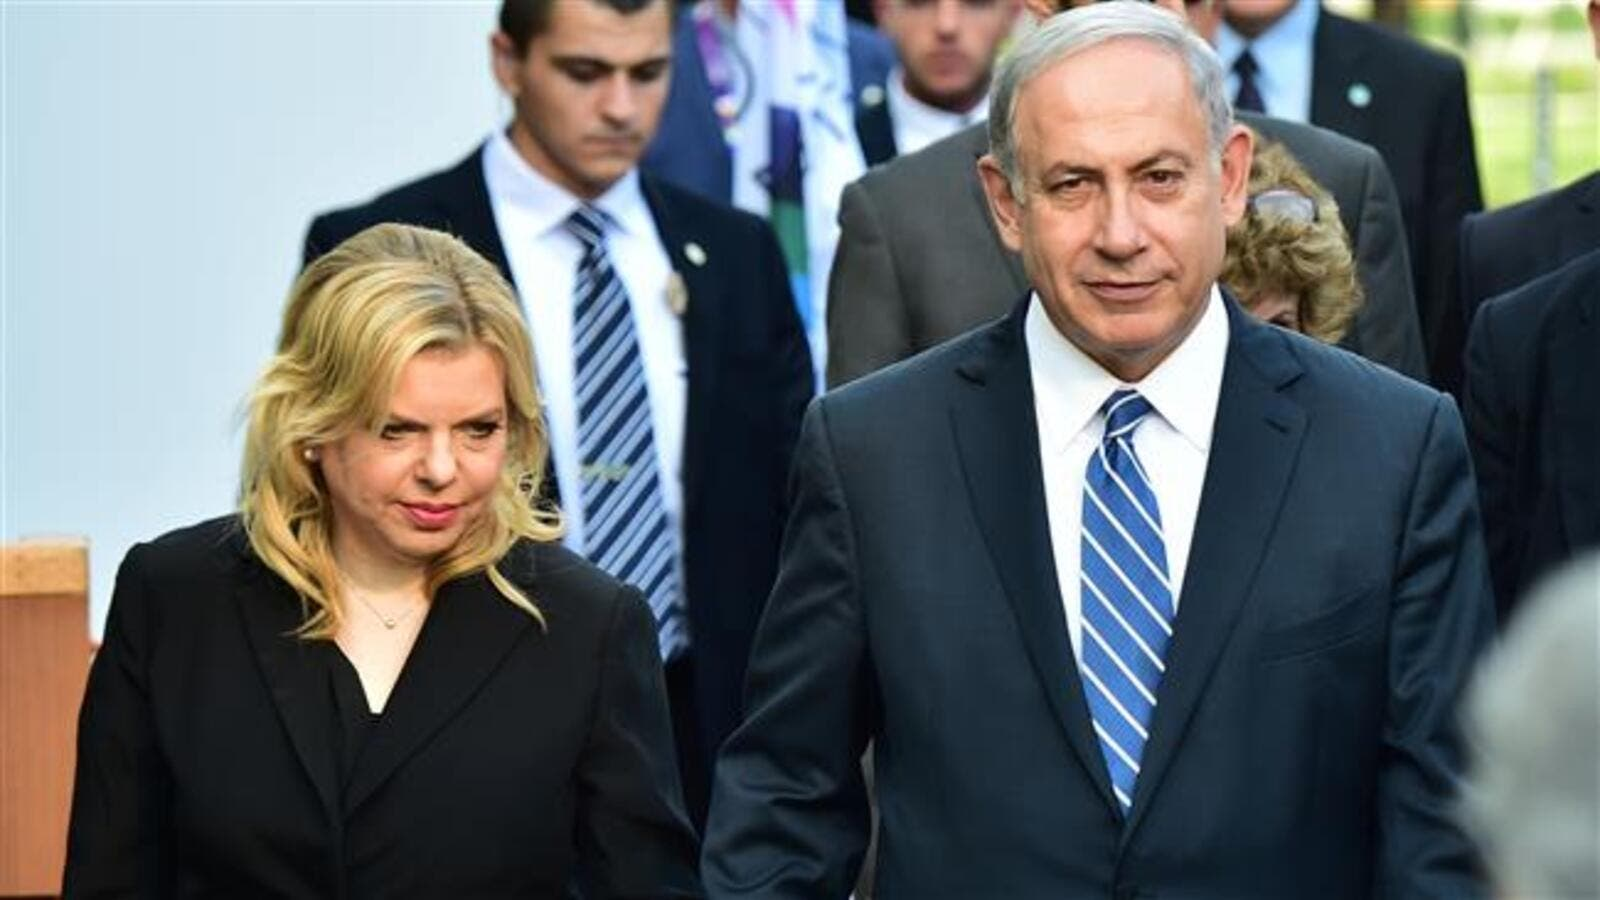 Israeli Prime Minister Benjamin Netanyahu and his wife estimated to be questioned in the court over corruption allegations. (AFP/ File Photo)